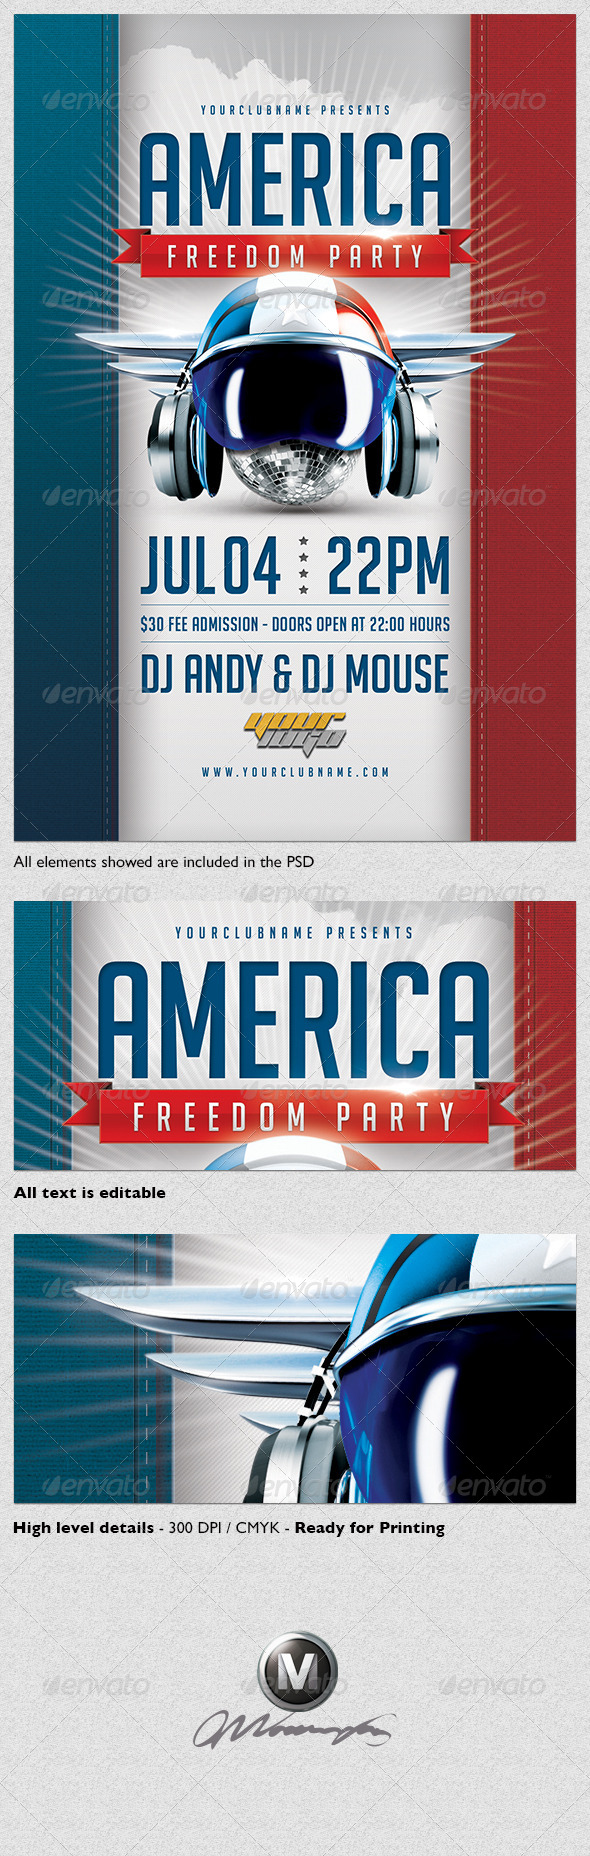 America Freedom Flyer Template - Events Flyers